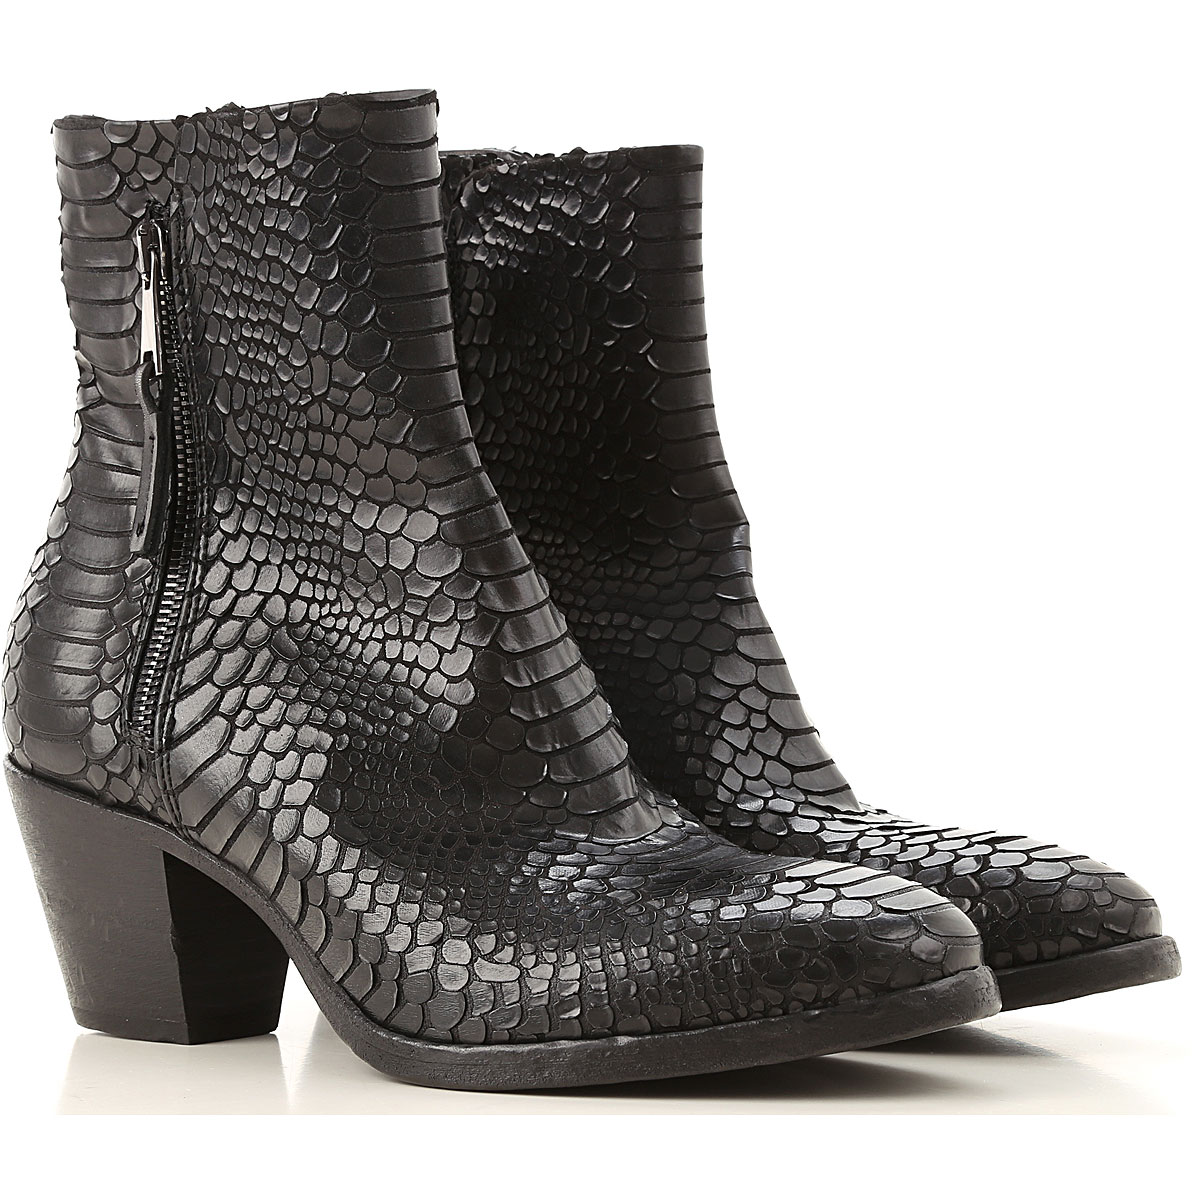 Elena Iachi Boots for Women, Booties On Sale, Black, Fabric, 2019, 10 5 6 6.5 7 8 8.5 9